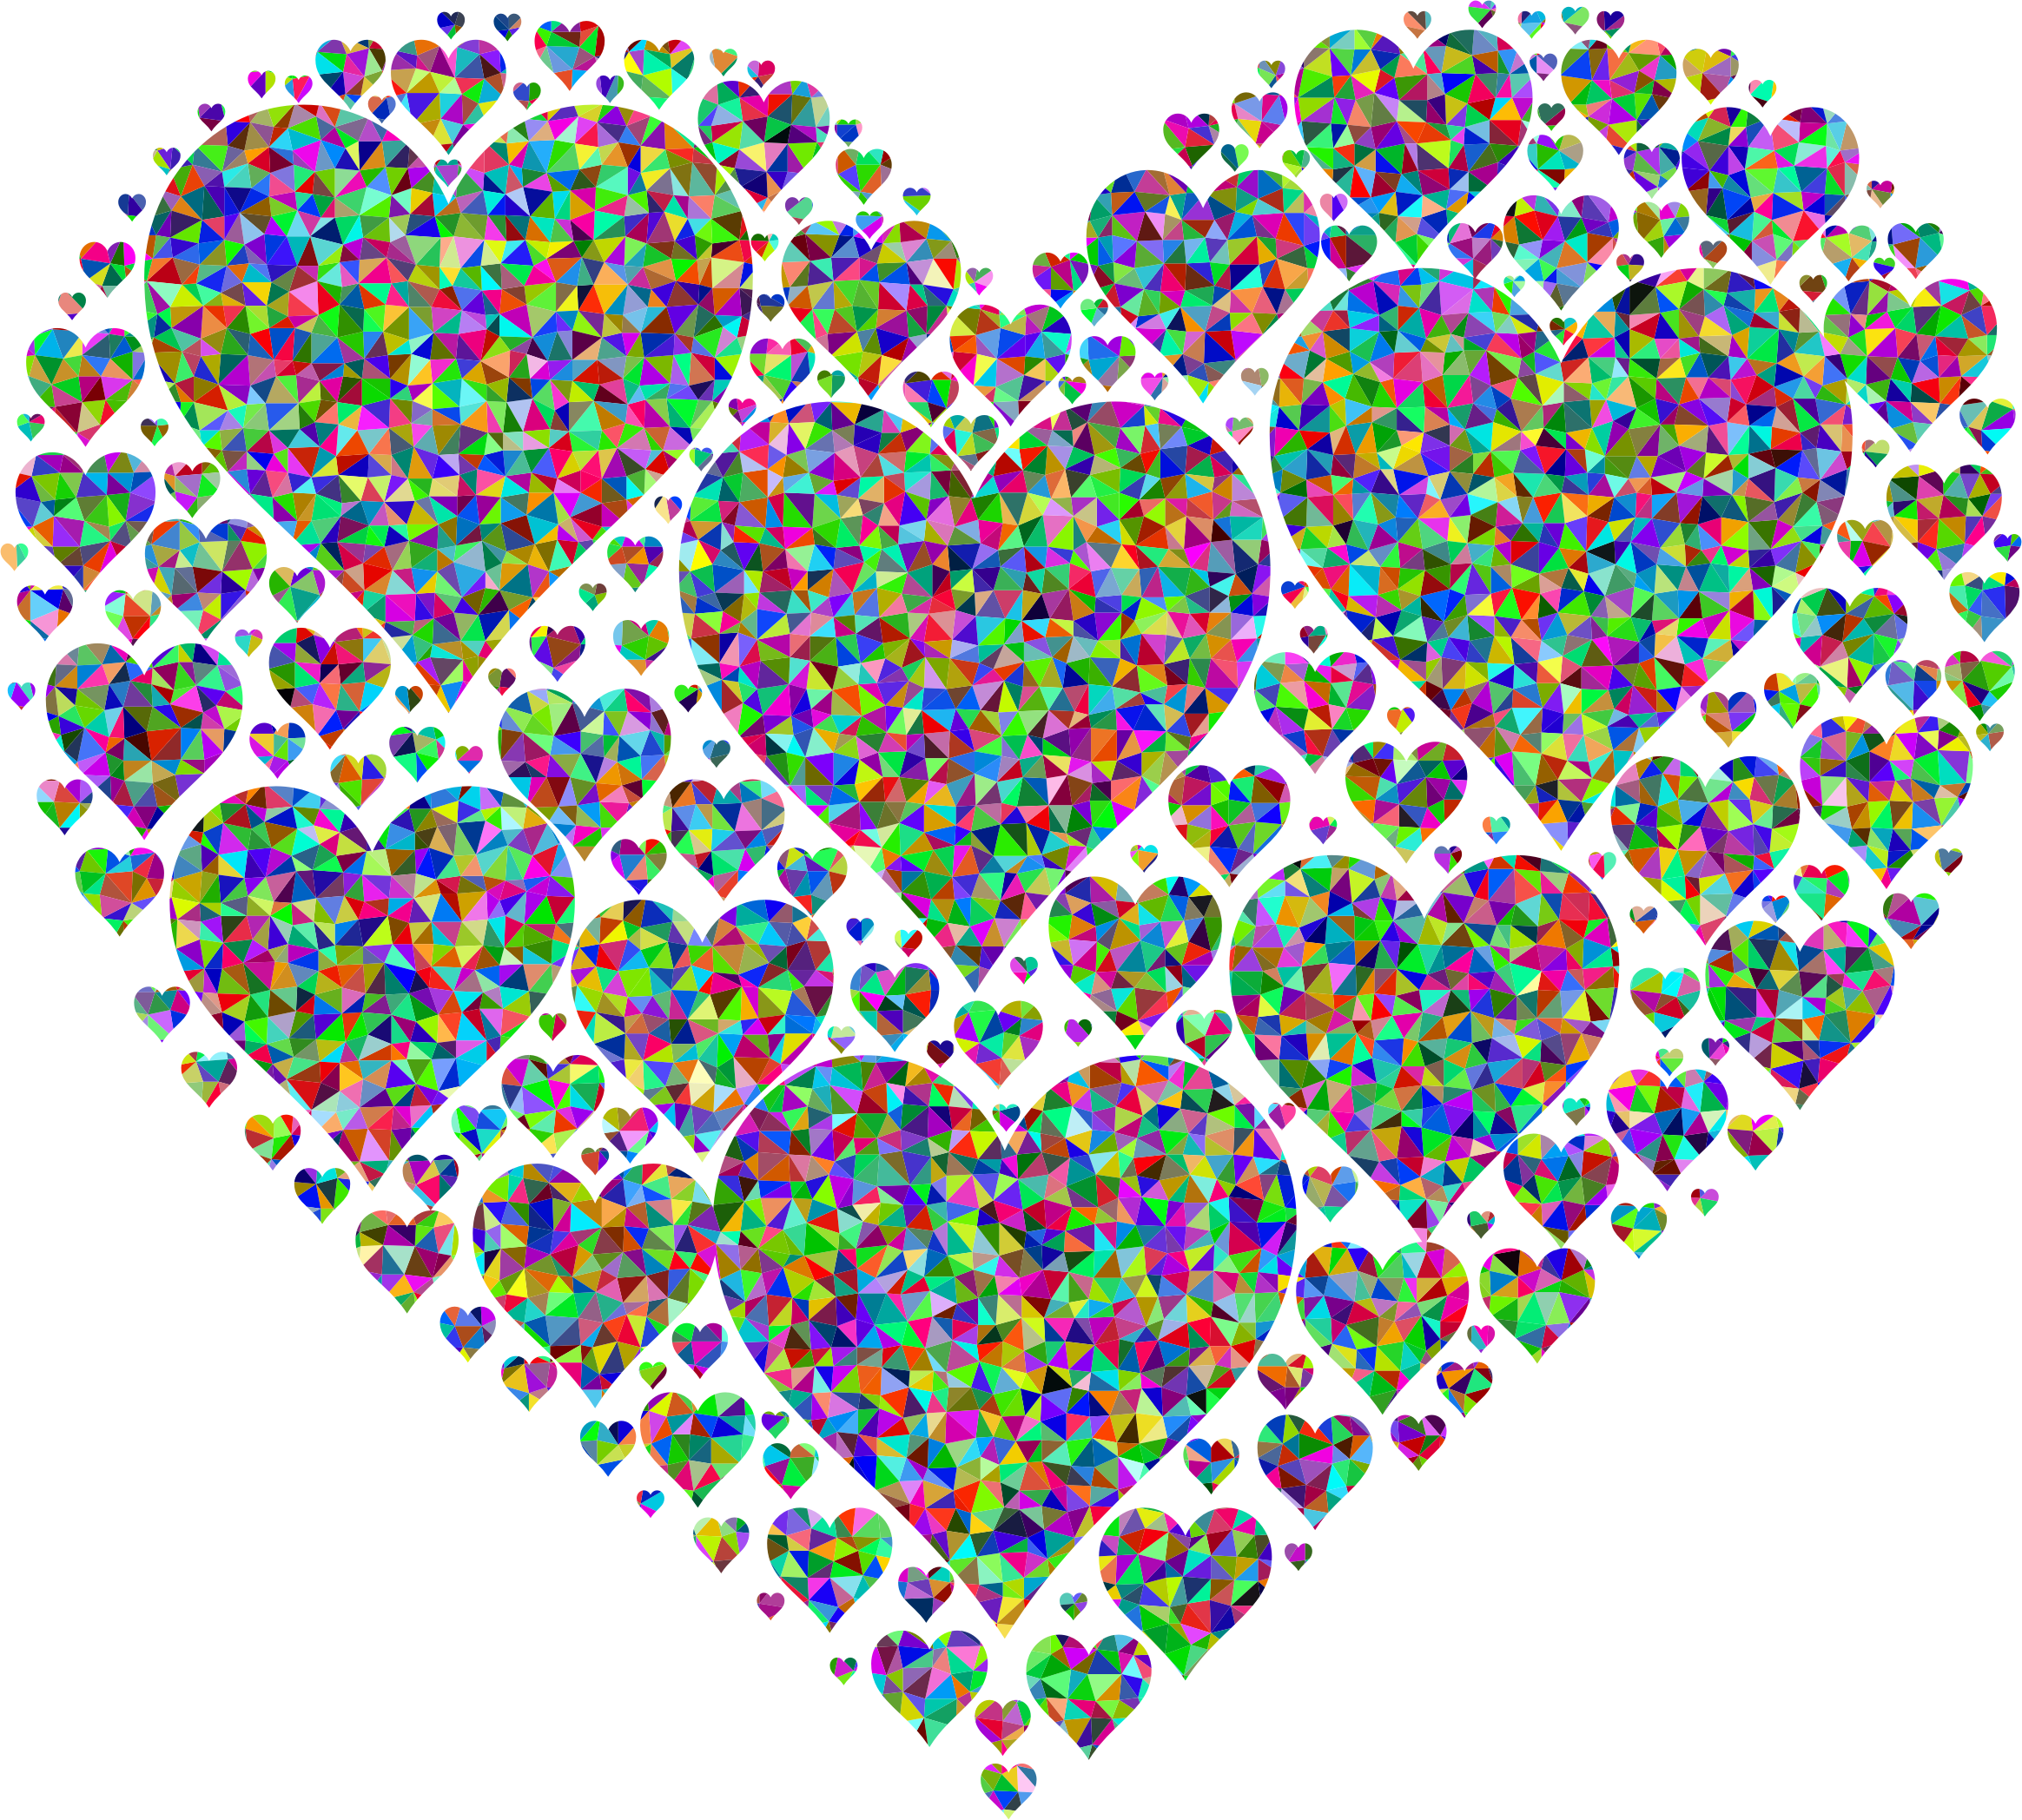 Food clipart heart. Prismatic low poly hearts